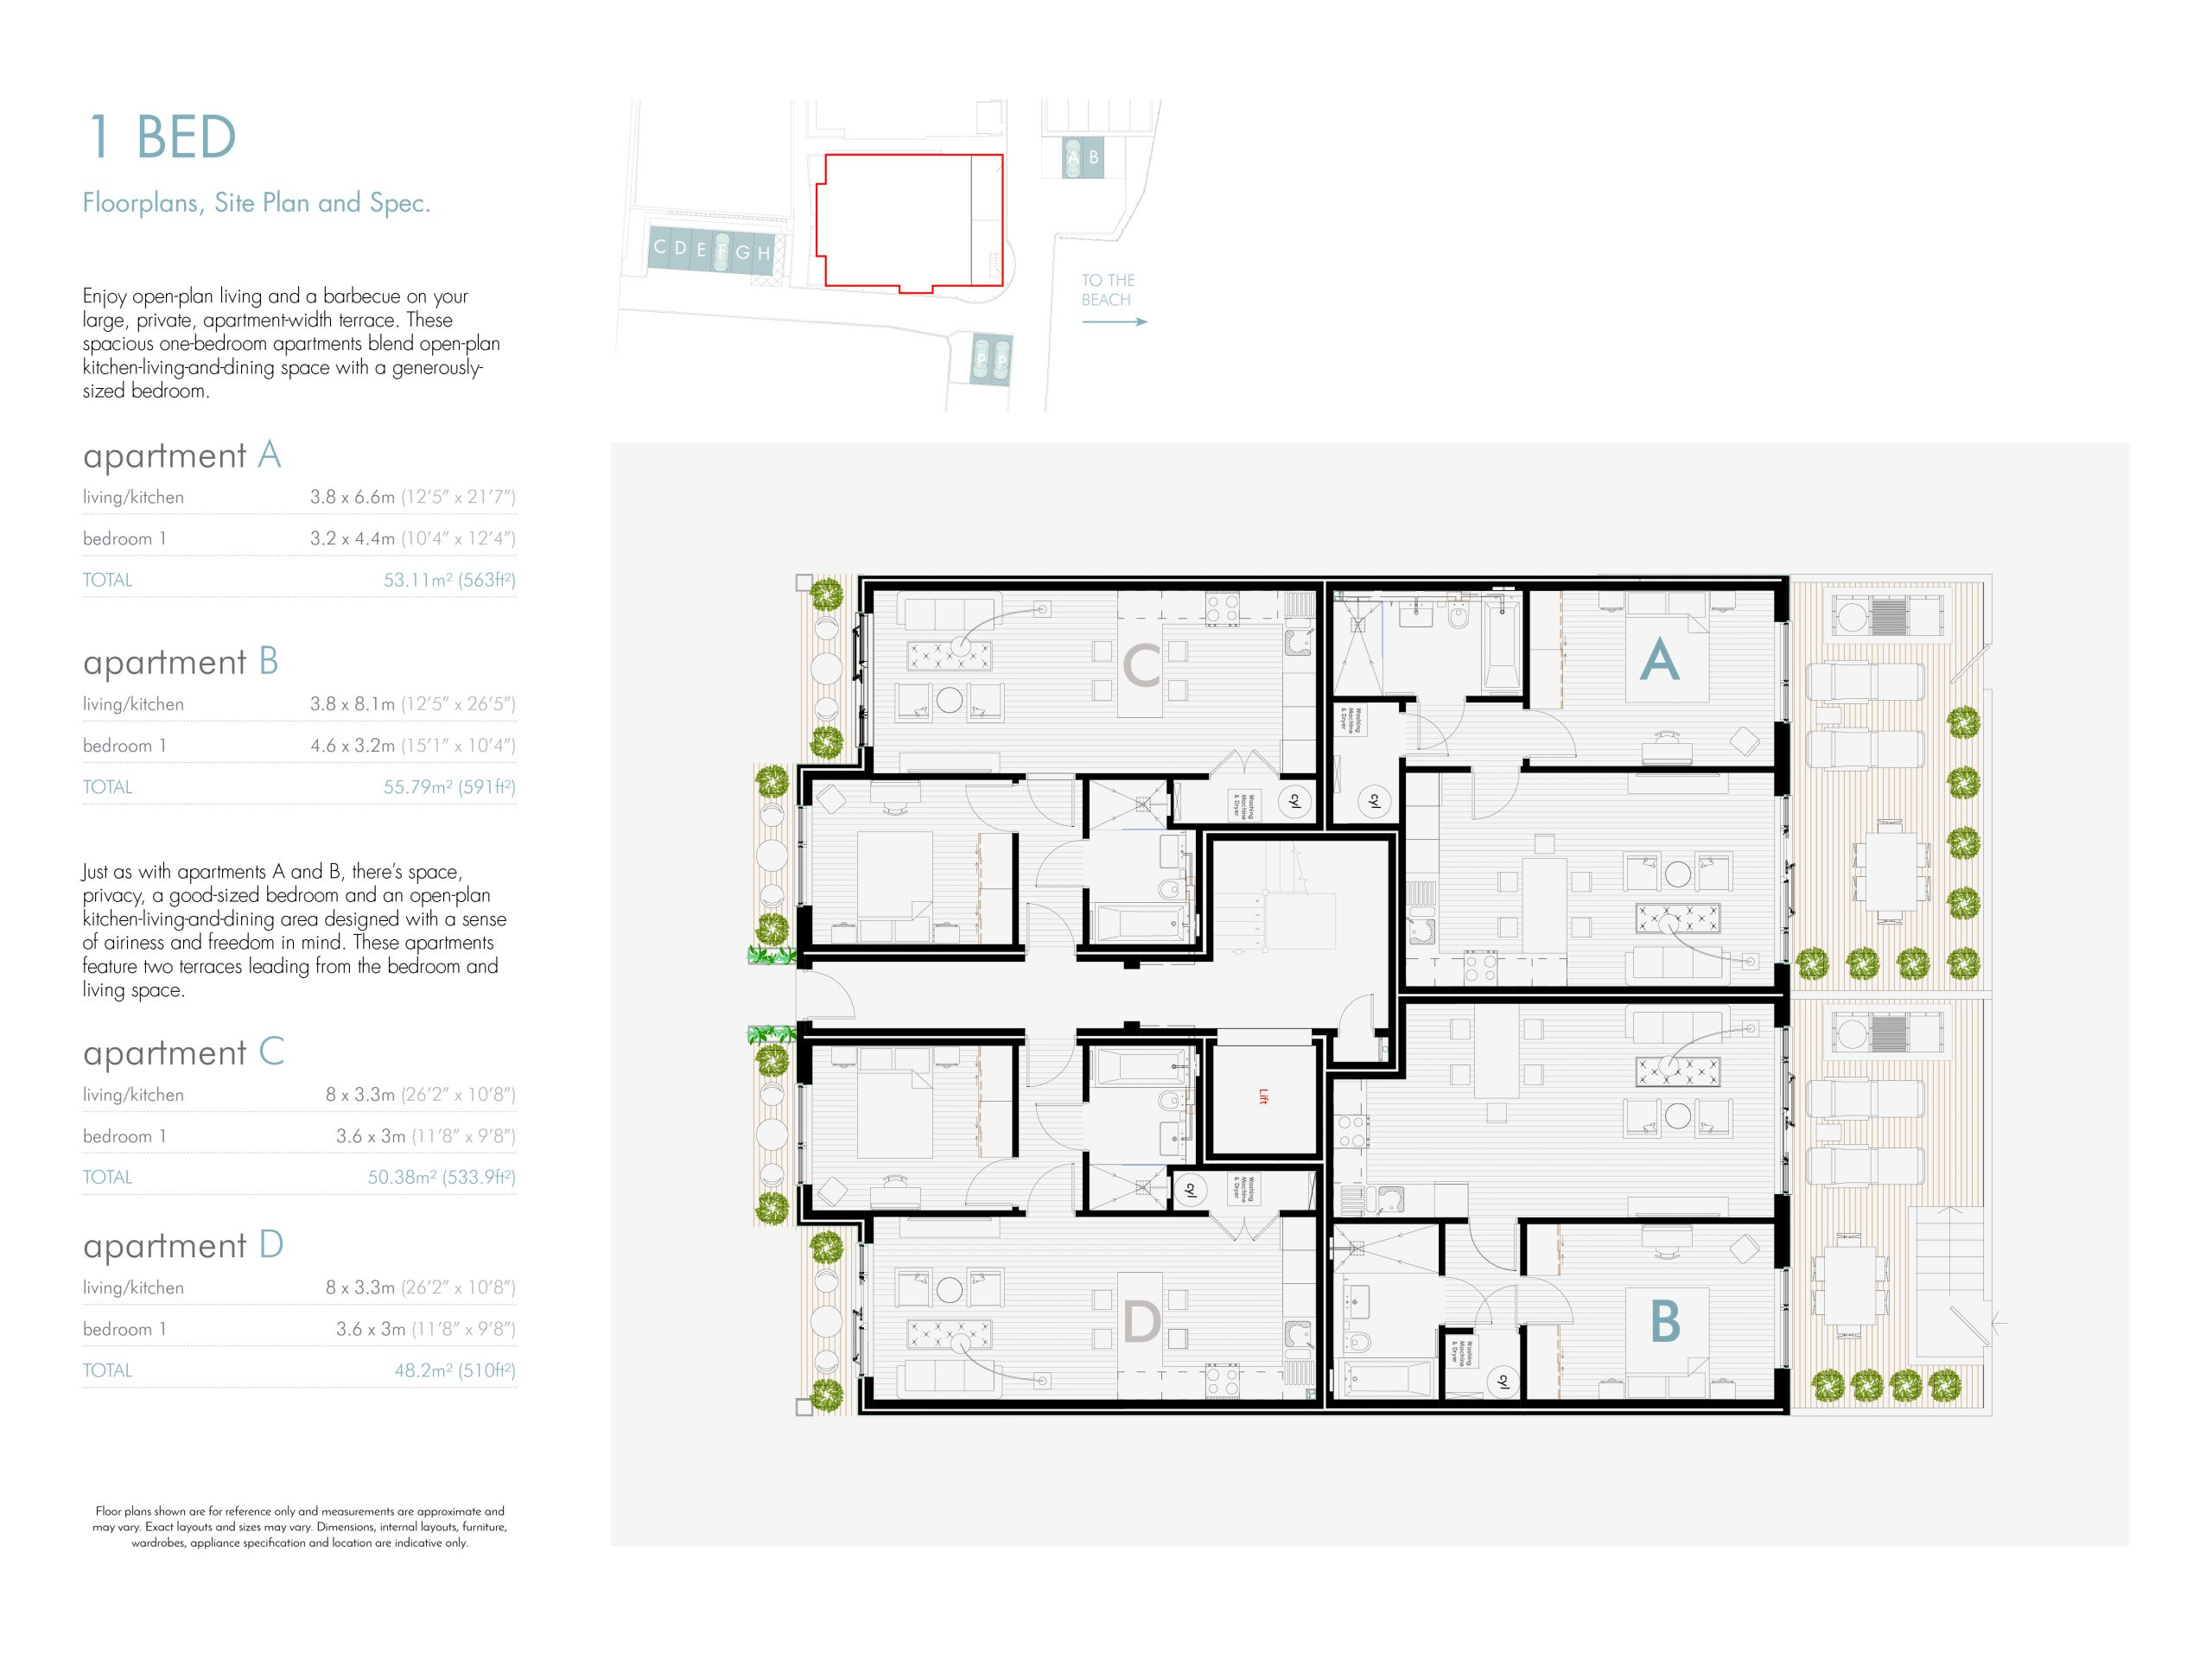 Stephens and stephens developers Saltwater pentire avenue newquay cornwall Floorplans 1200x900 1 bed